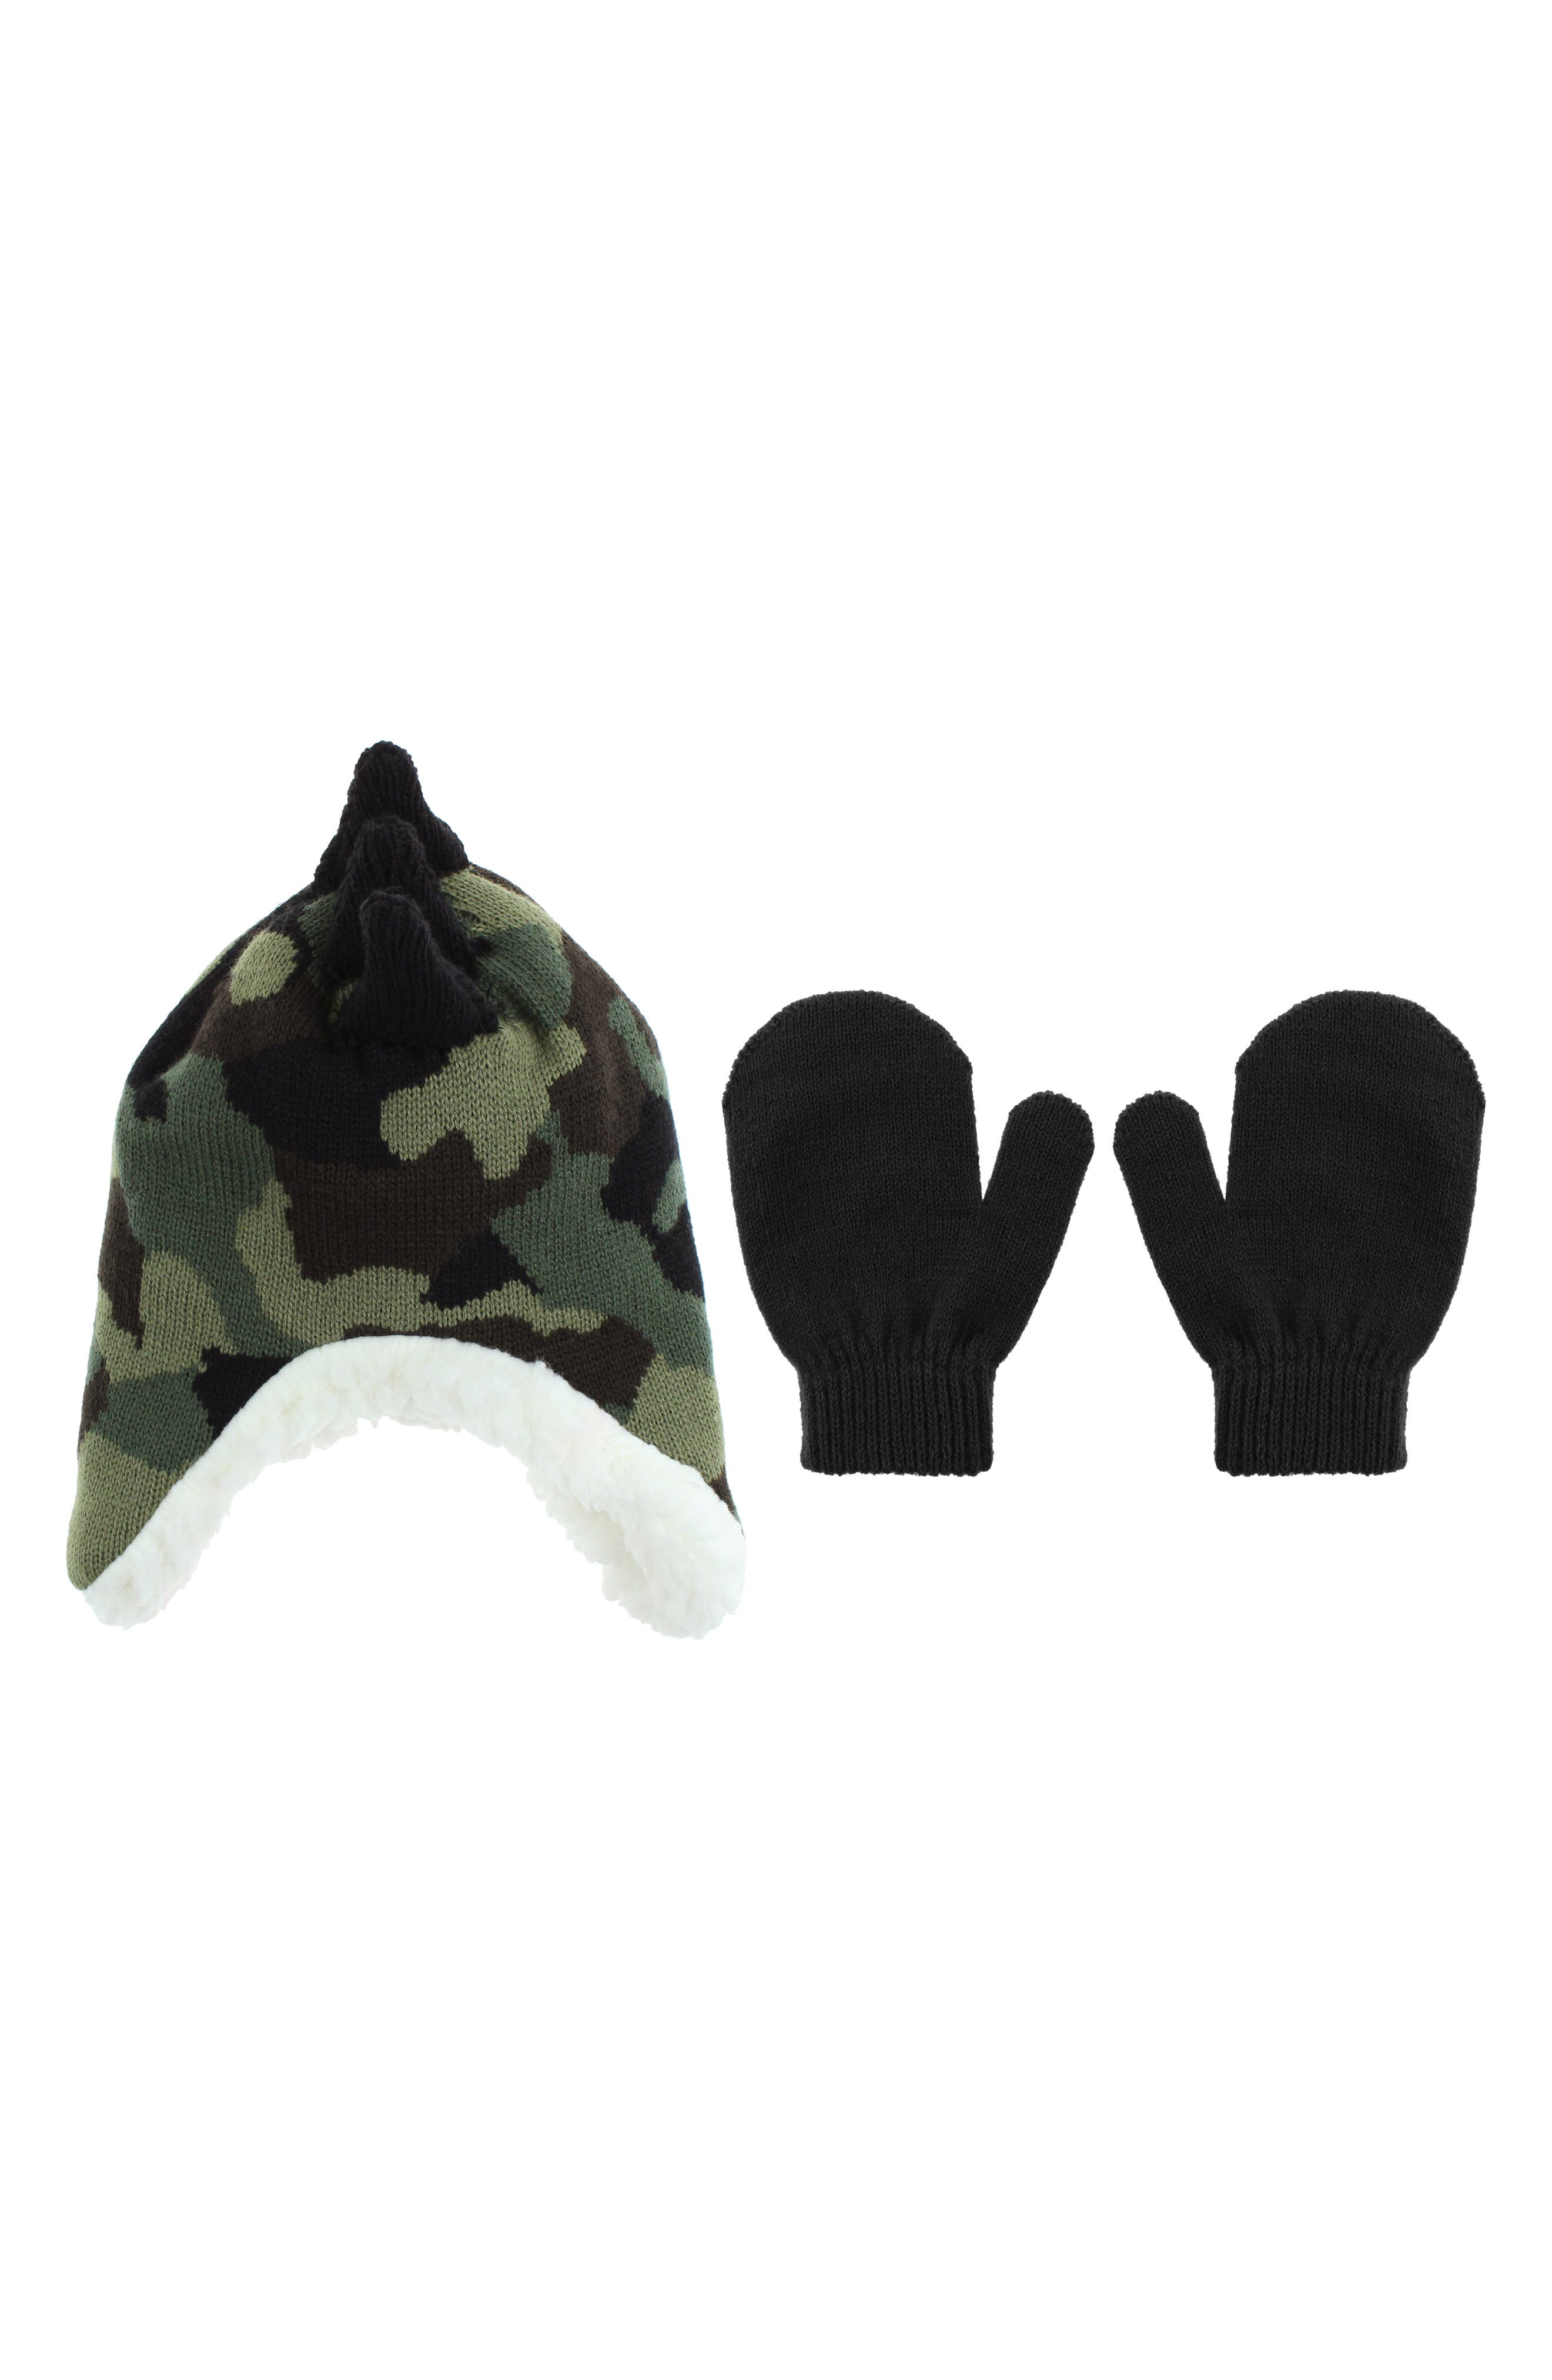 Toddler Boys Capelli New York Camo Dino Earflap Hat  Mittens Set  Black